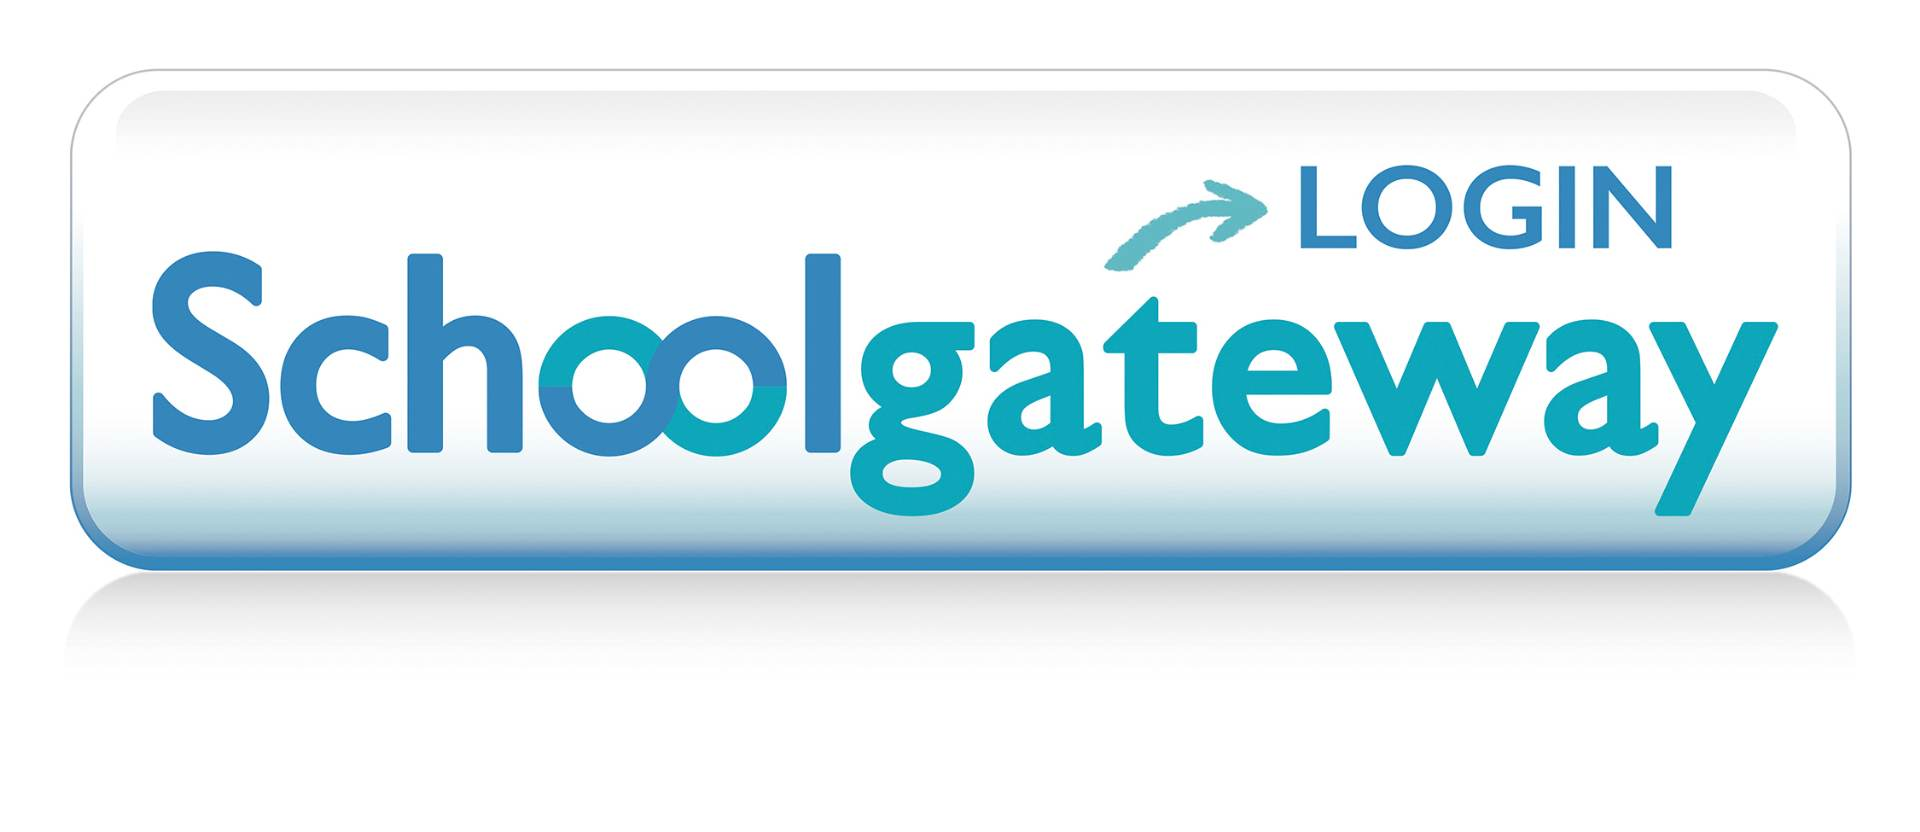 School Gateway login page